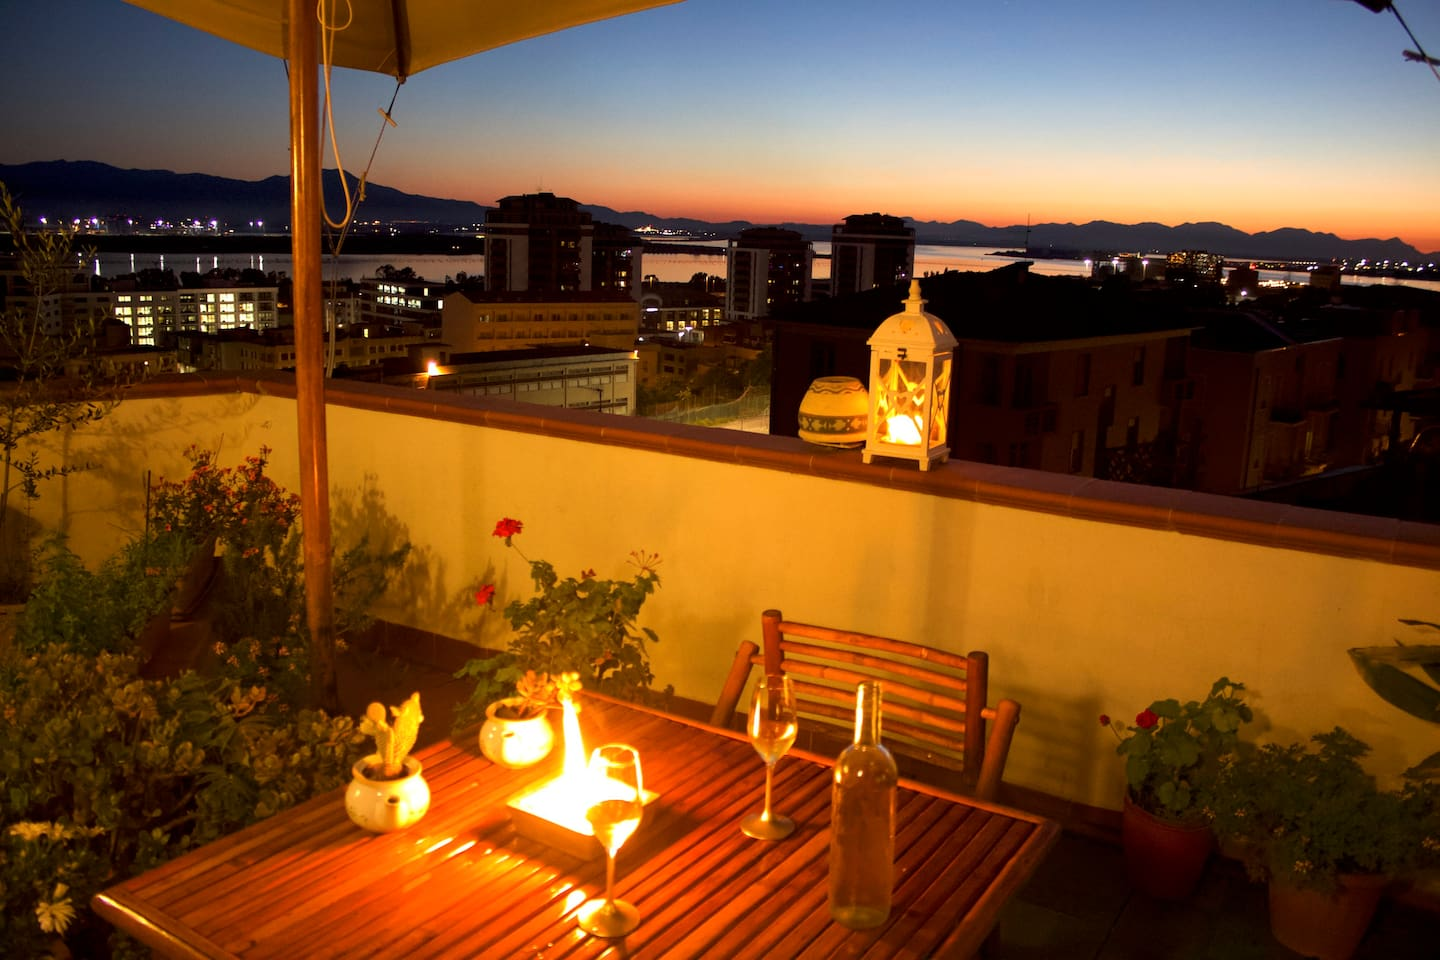 The view at sunset from the terrace on Cagliari salt lakes.